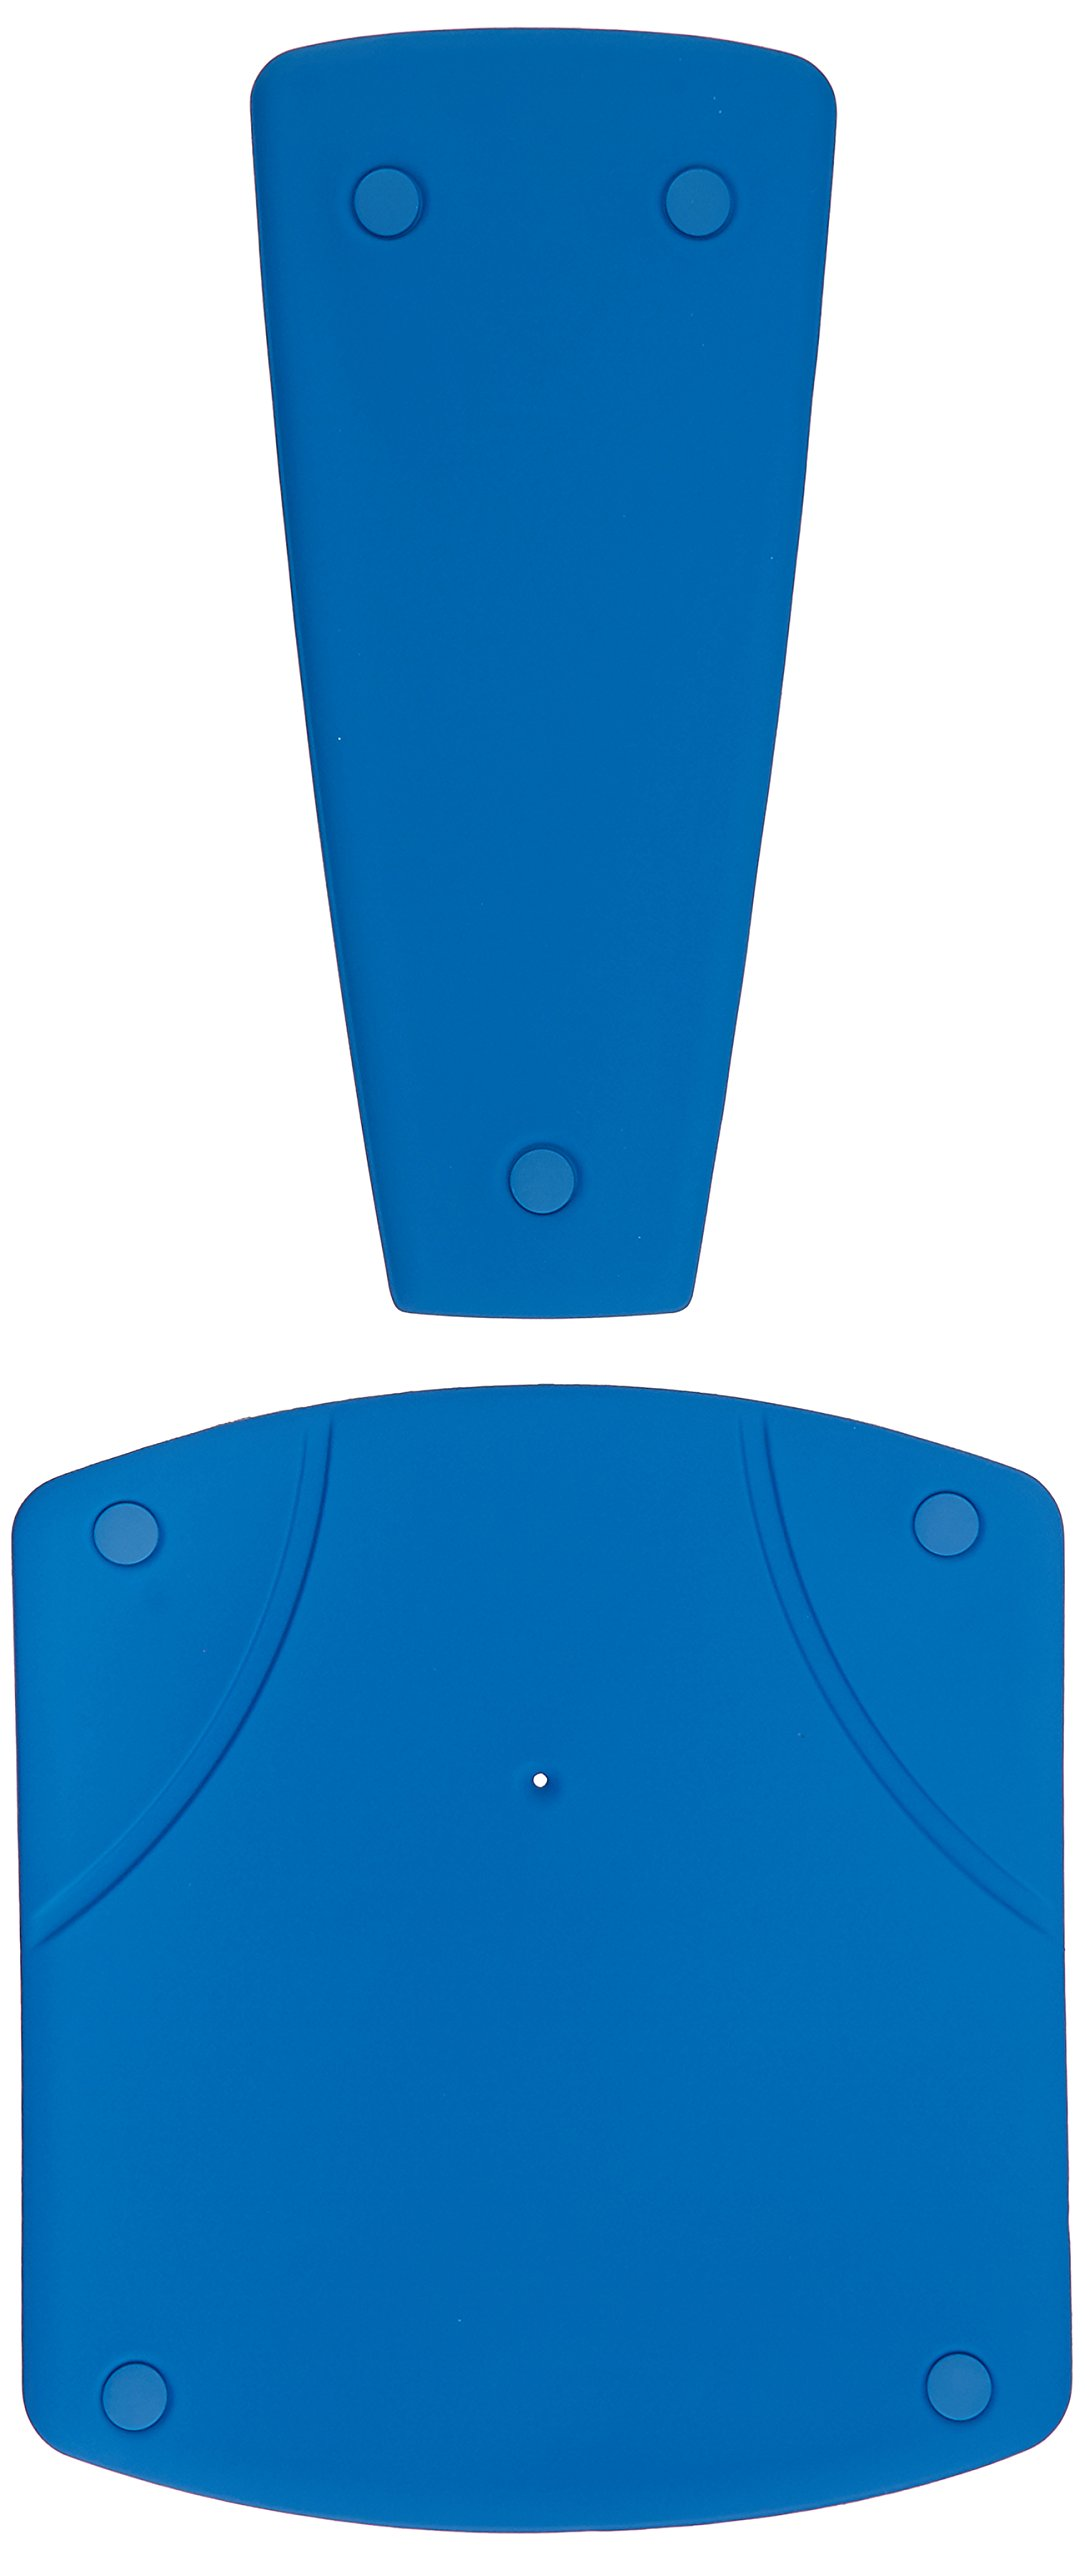 Bathmaster Deltis Cover, Blue Standard Cover Fits Deltis Bathlift, Comfortable 1/4'' Foam Seat and Backrest Cover Protects Bath Lift, Easy to Use Cover Snaps Into Place, Washable